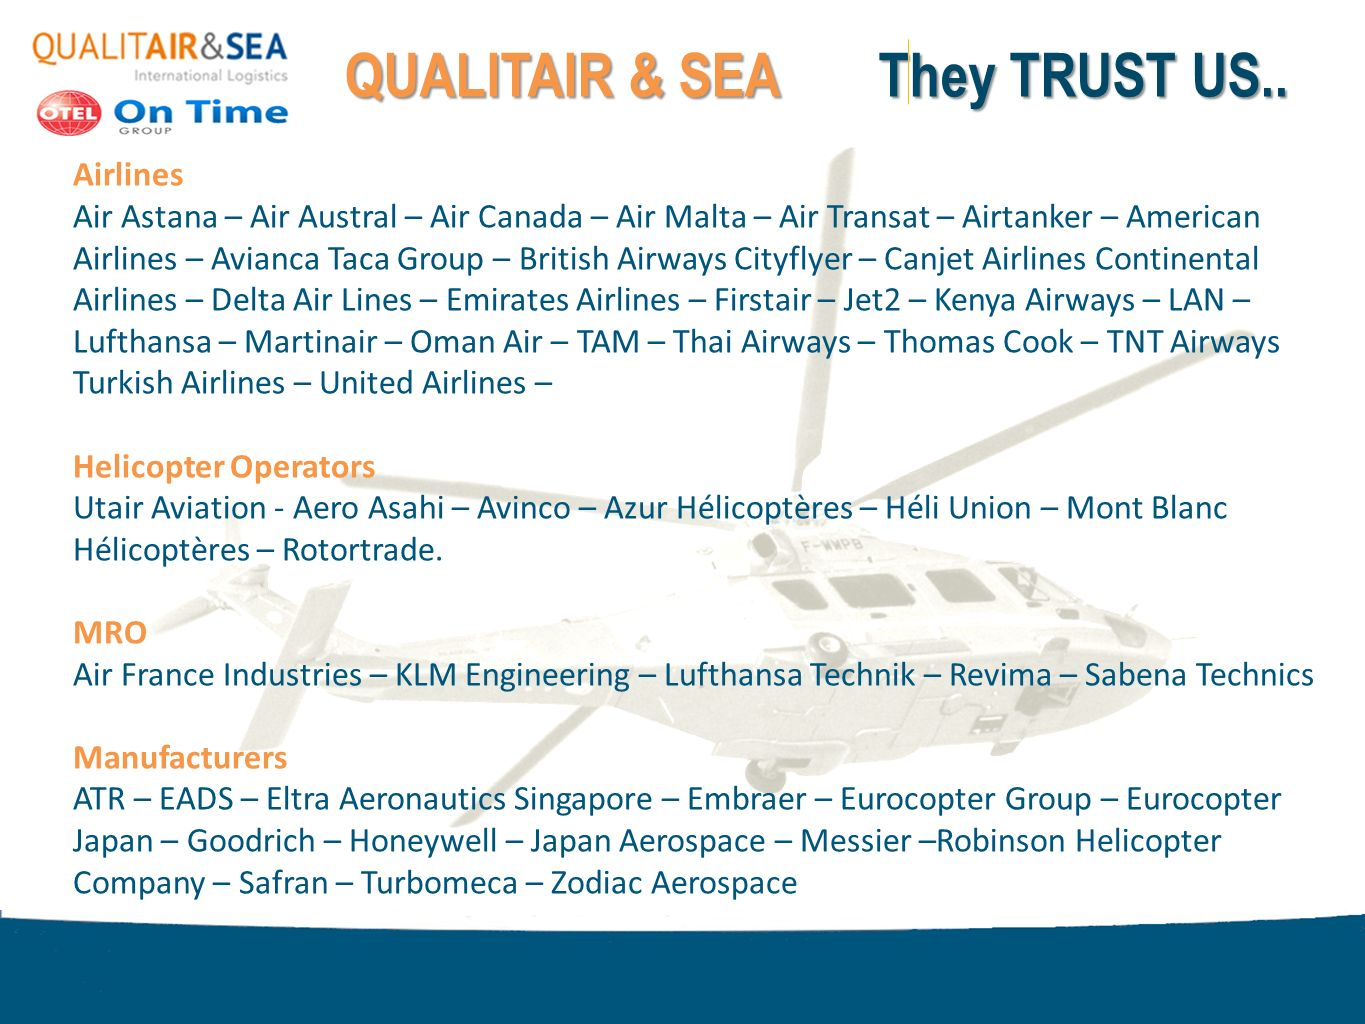 QUALITAIR & SEA They TRUST US..